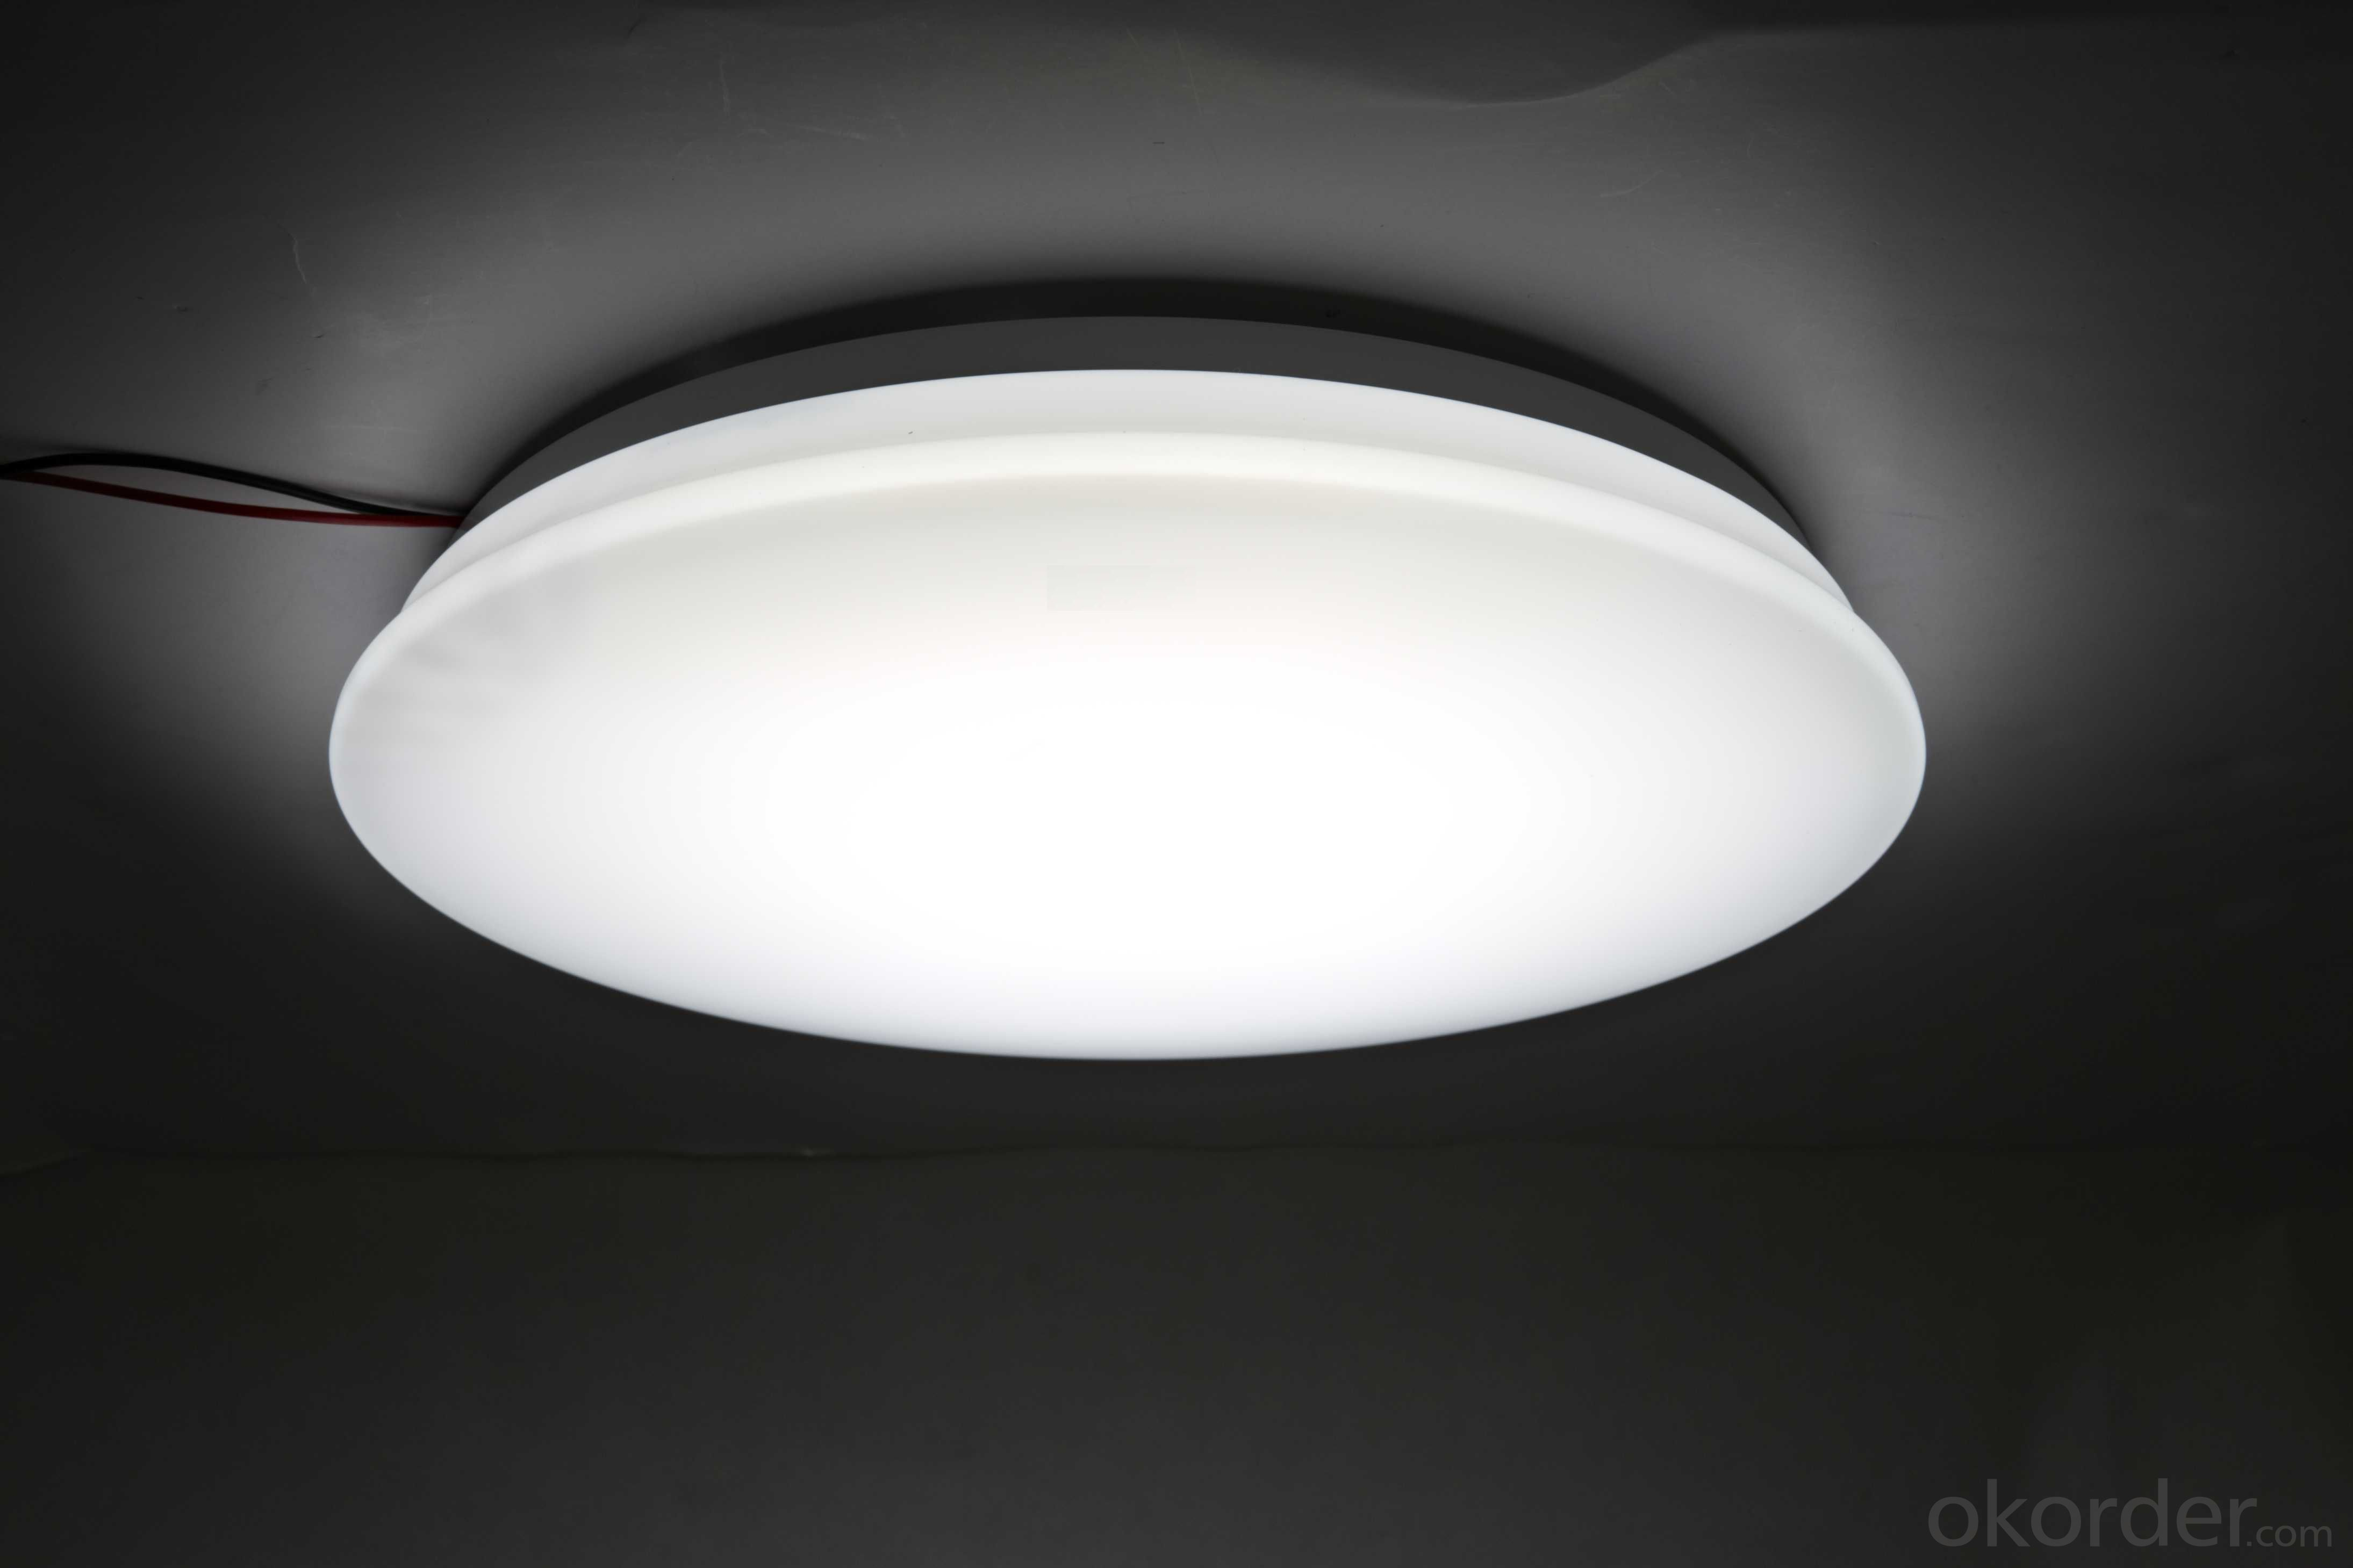 Consumer luminaire Home ceiling HC350 420 650 Home Hotel